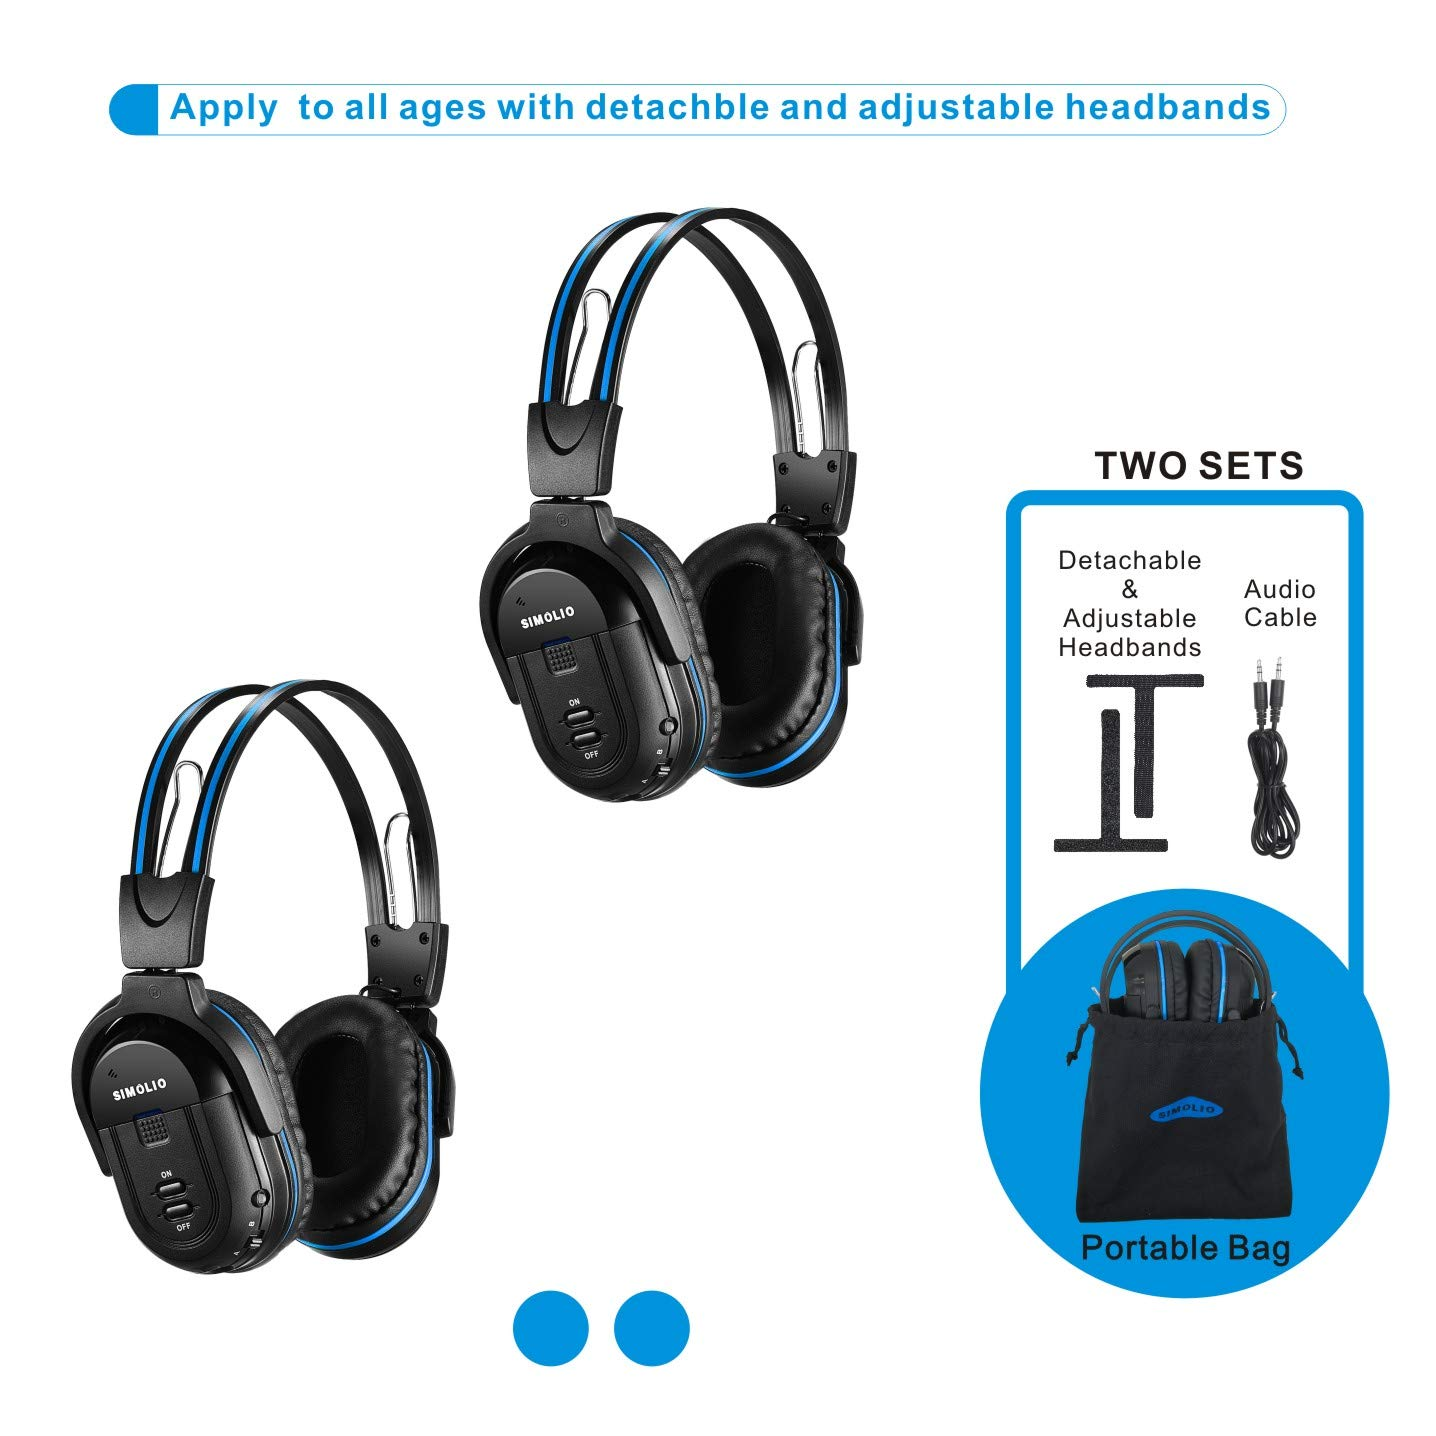 2 Pack of Wireless Car Headphones, Wireless Headphones for Kids, in Car Wireless Headphones with Travelling Bag for Universal Rear Entertainment System, 2 Channel Wireless Headphones by SIMOLIO